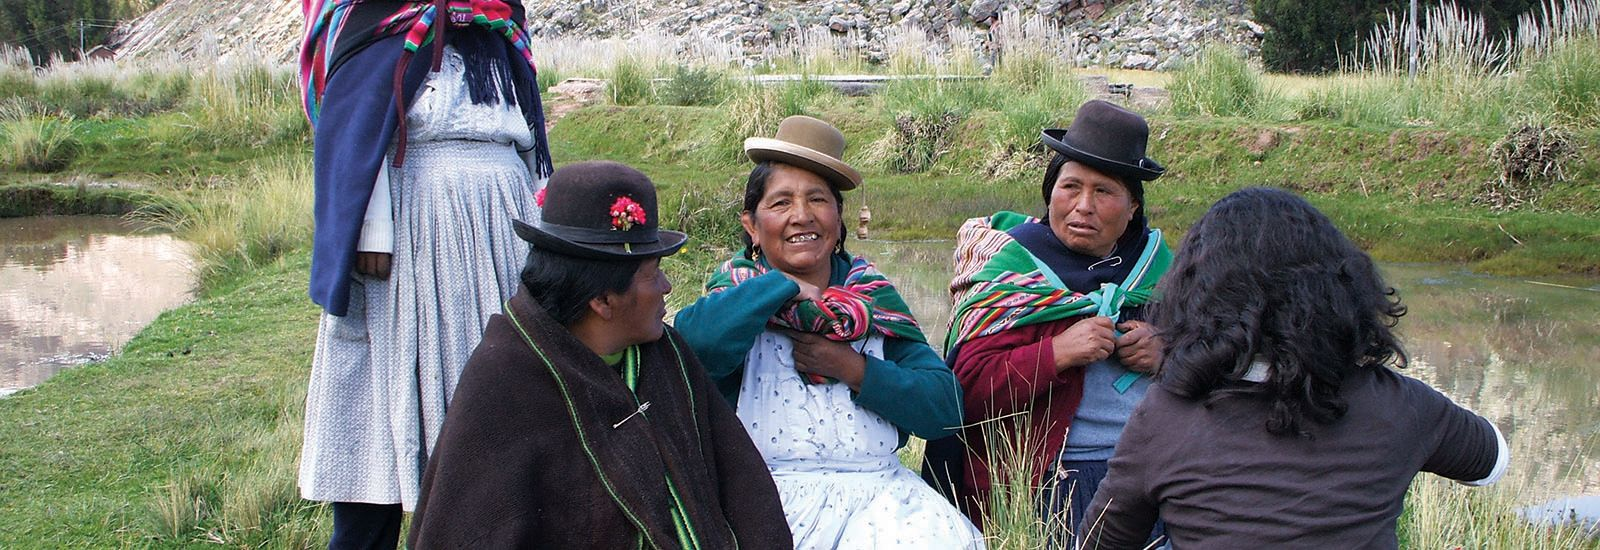 5 people with four in traditional Peruvian clothing